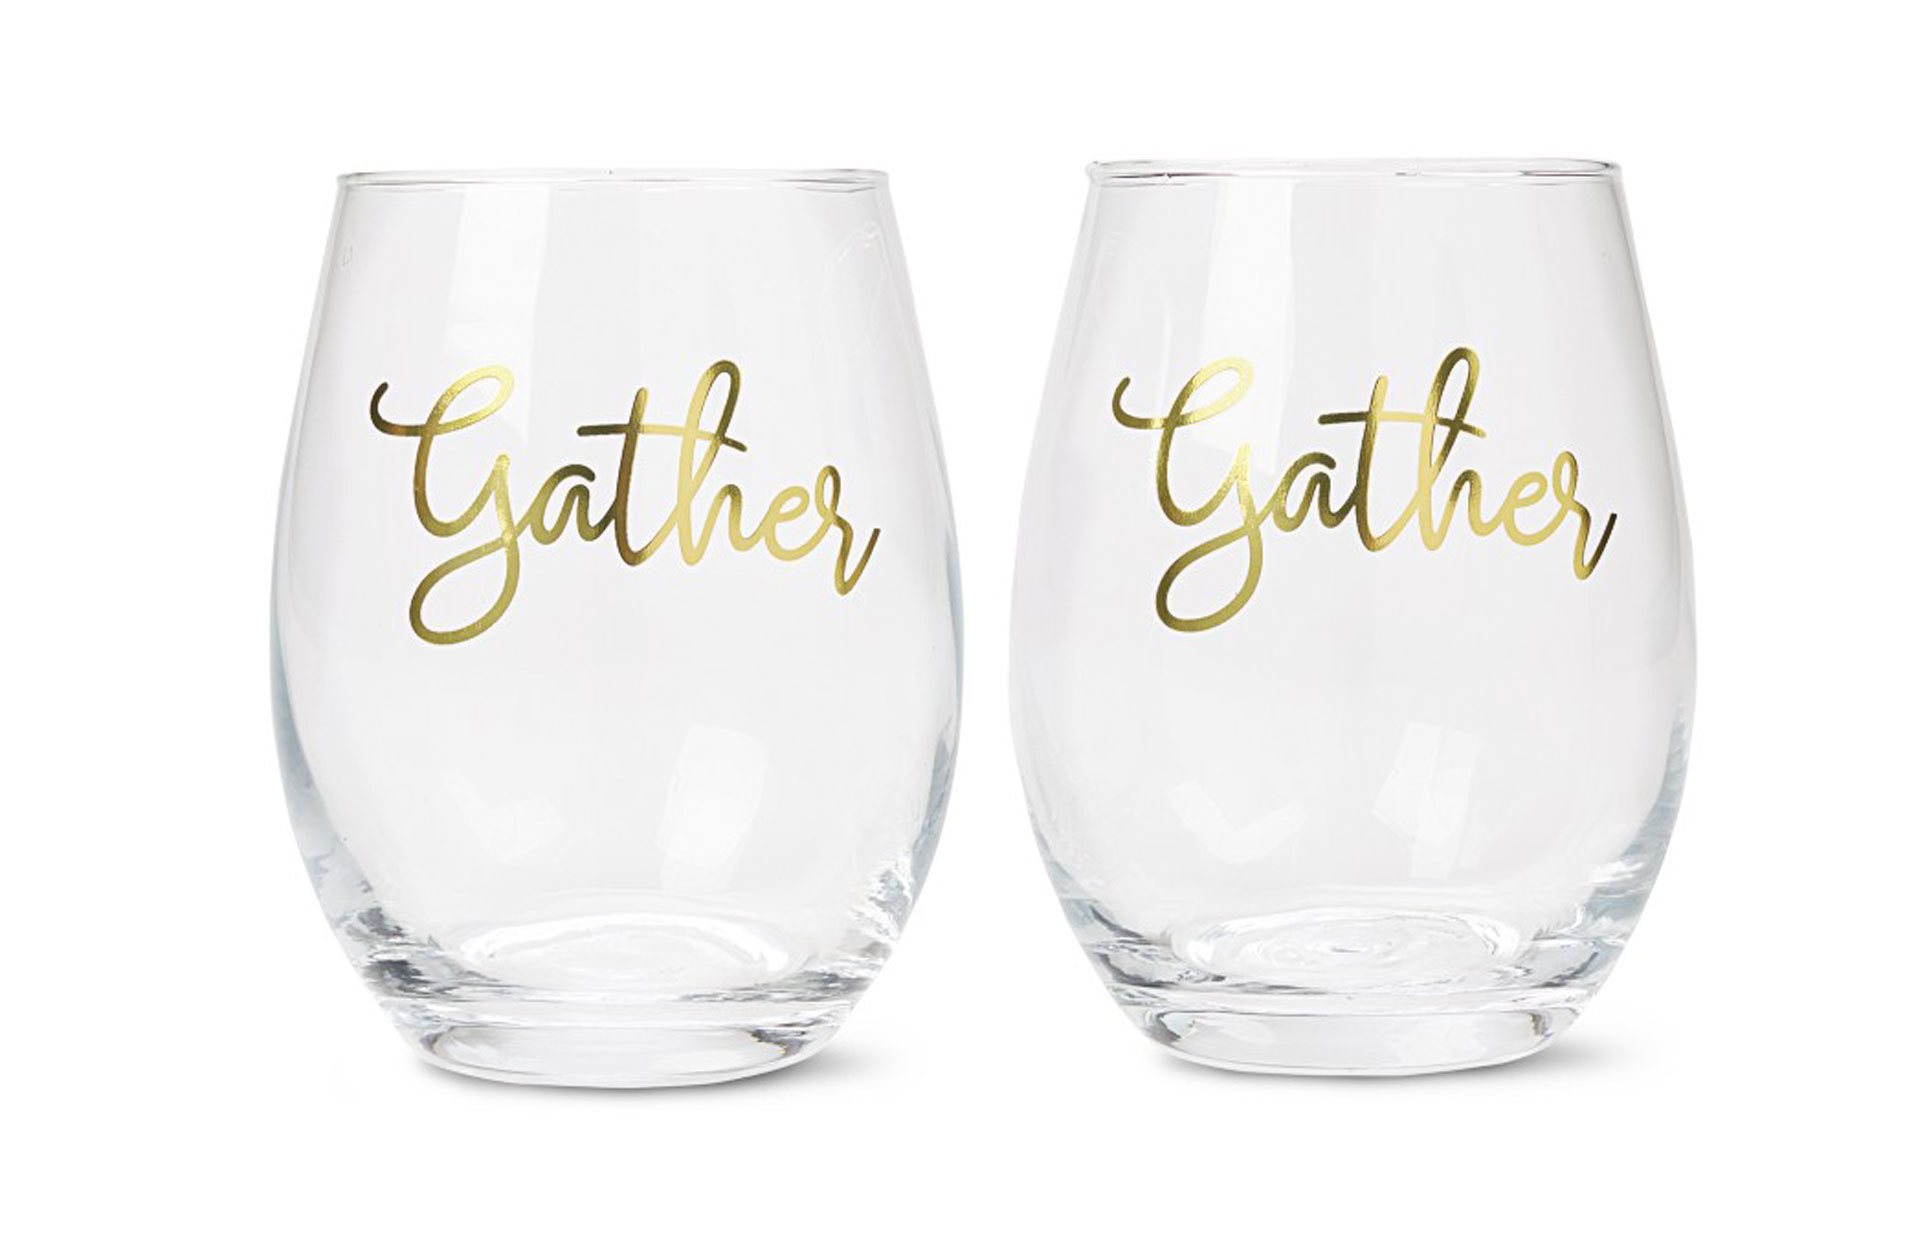 "Aldi stemless wine glasses with ""Gather"" printed on them"